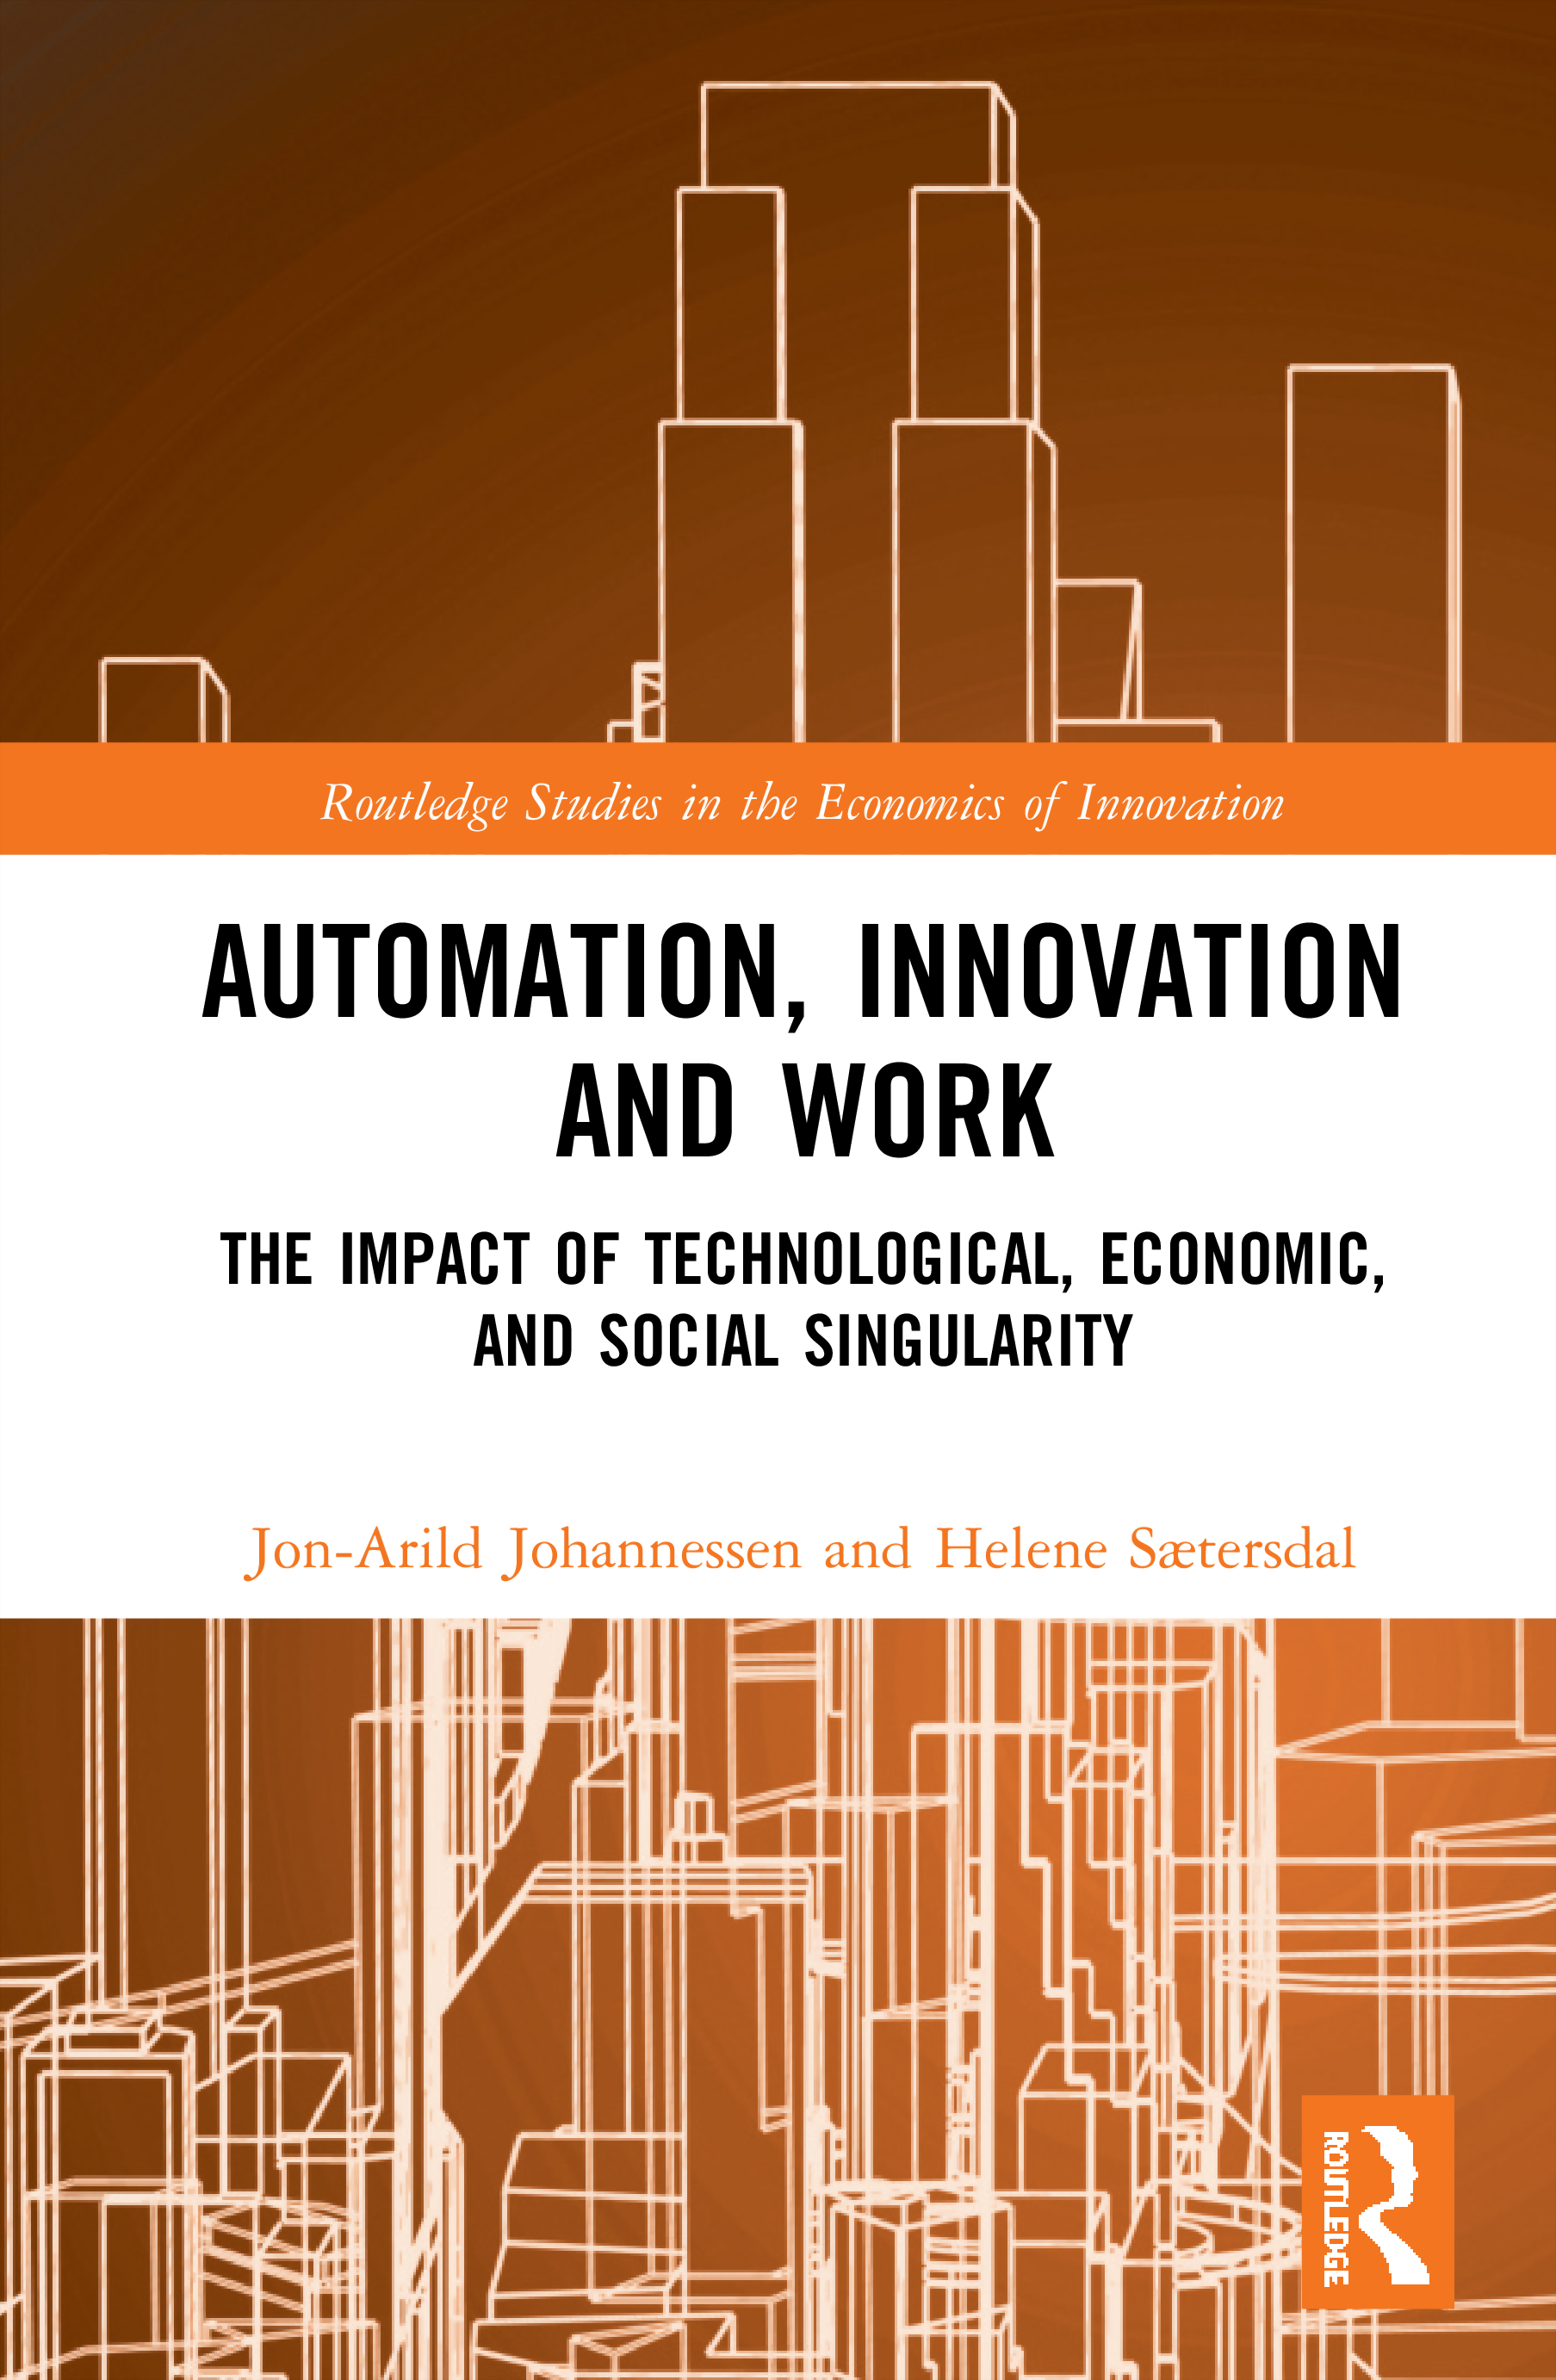 Automation, Innovation and Work: The Impact of Technological, Economic, and Social Singularity book cover